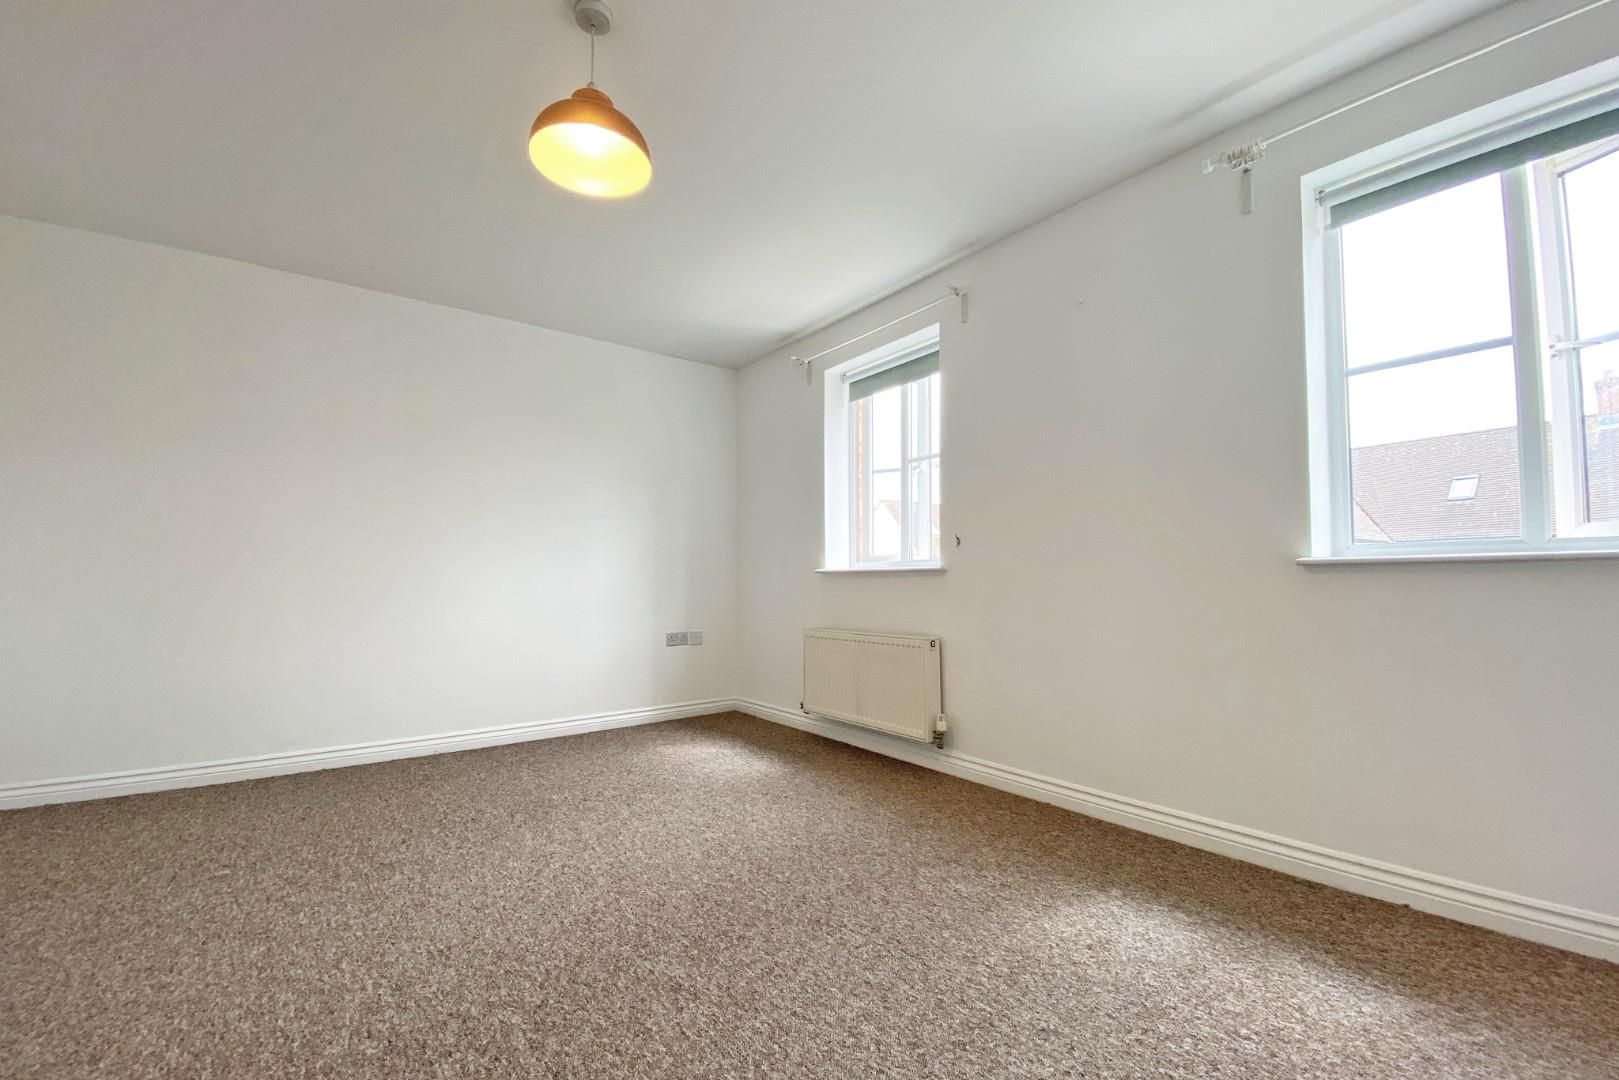 3 bed end of terrace to rent in Shinfield 6